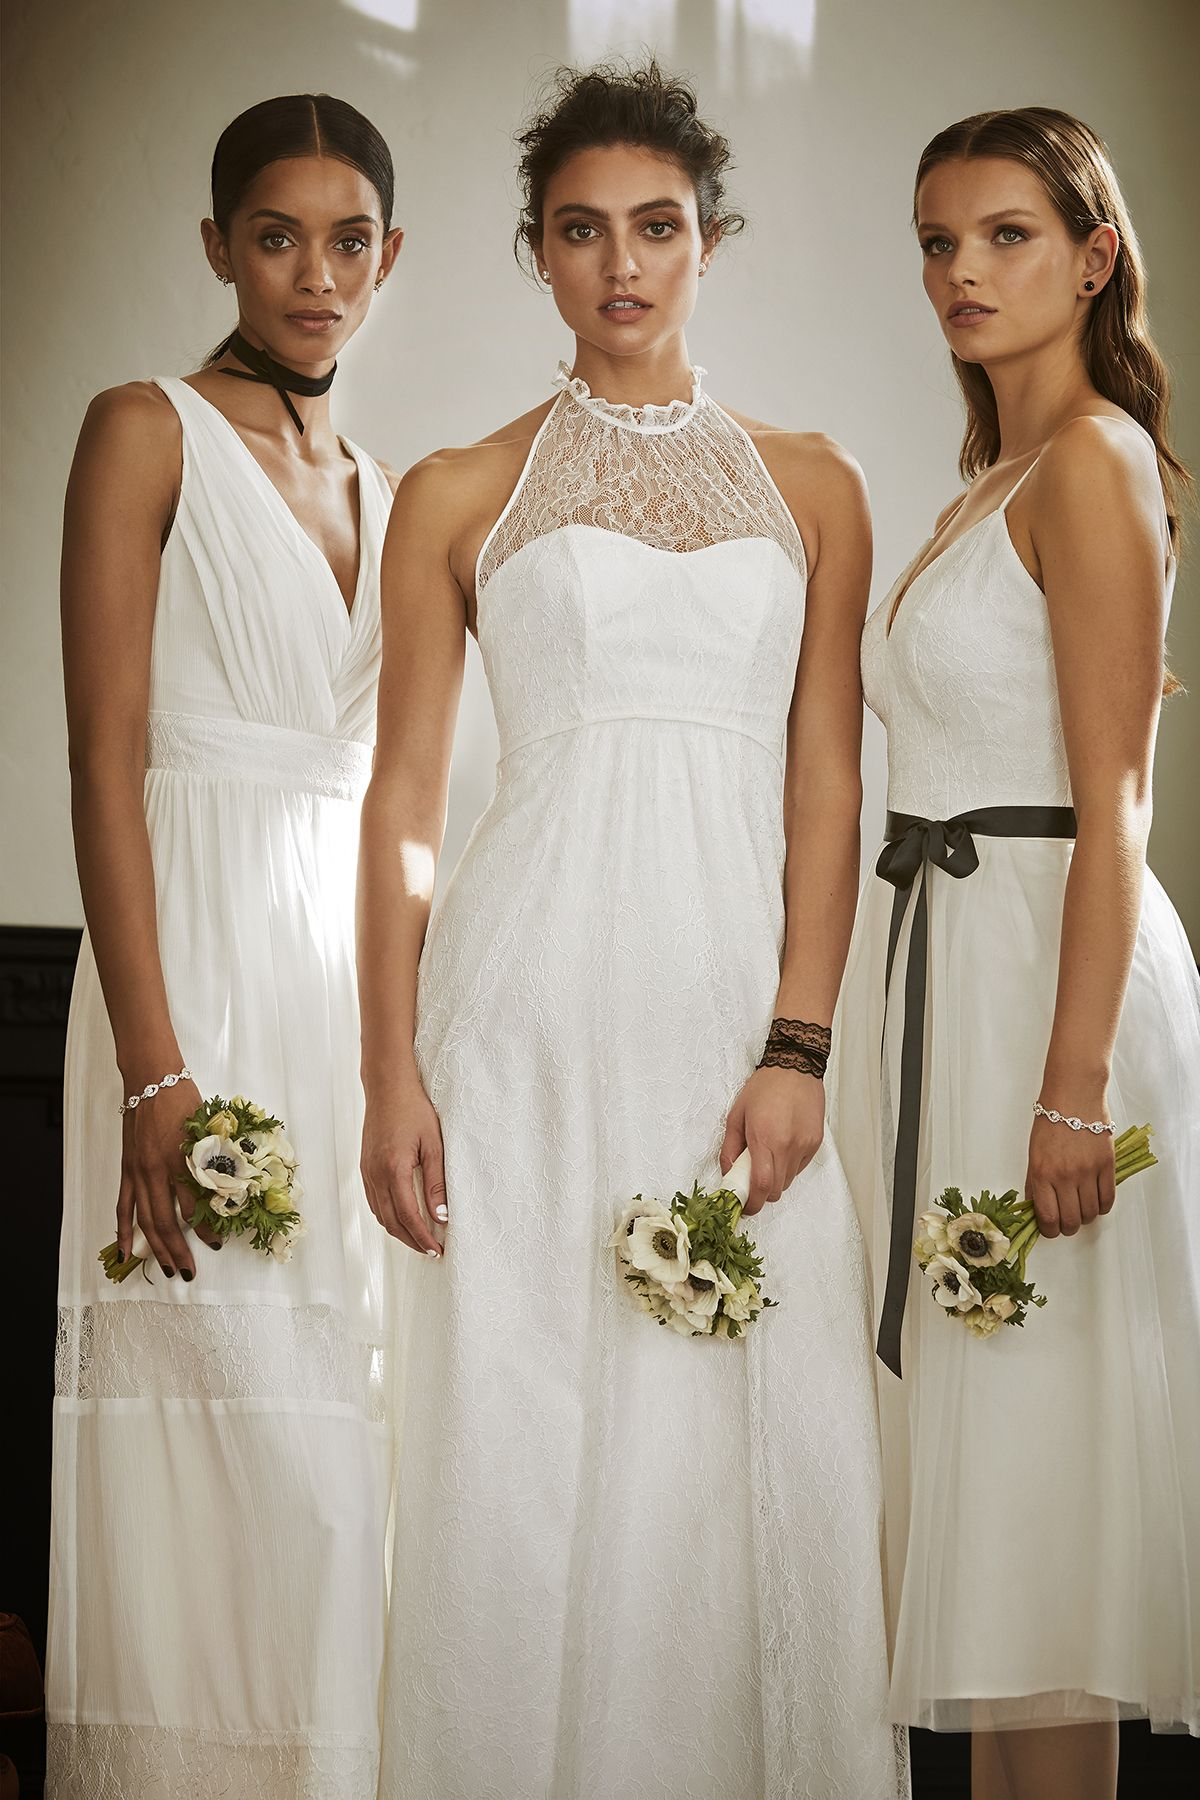 The All White Bridal Party In Favor Of White Bridesmaid